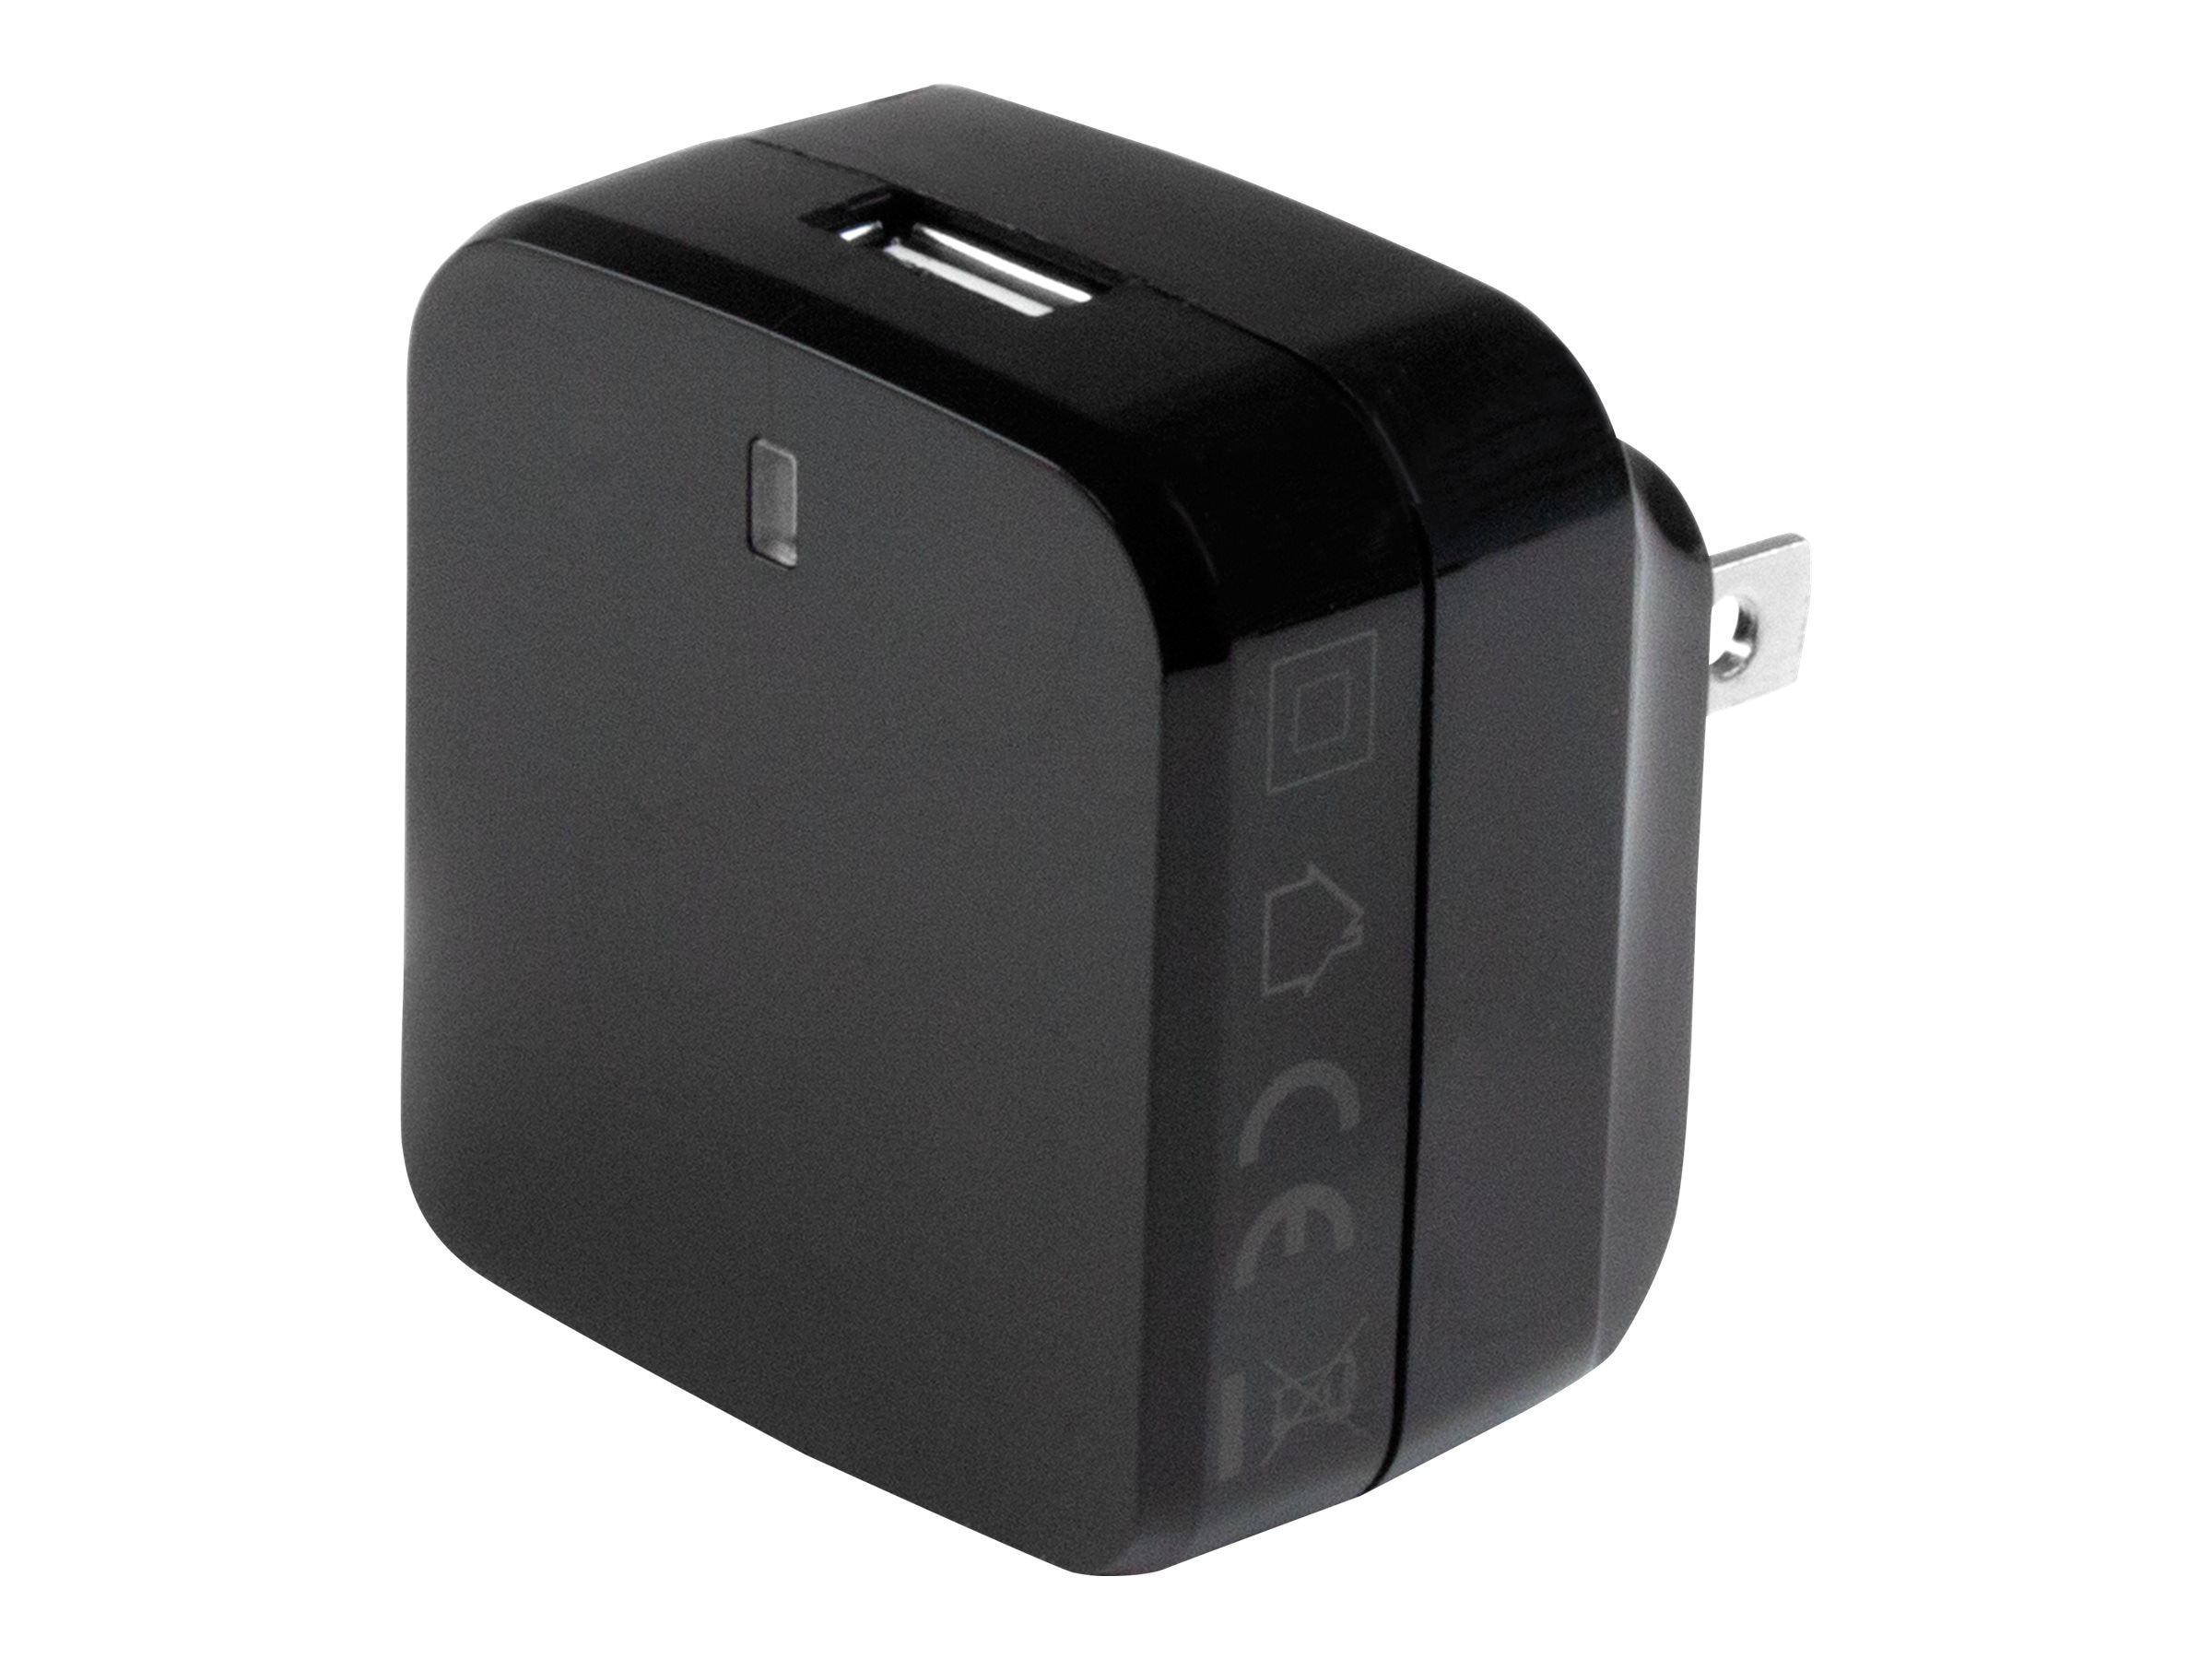 StarTech.com USB Wall Charger w  Quick Charge 2.0 for International Travel, Black